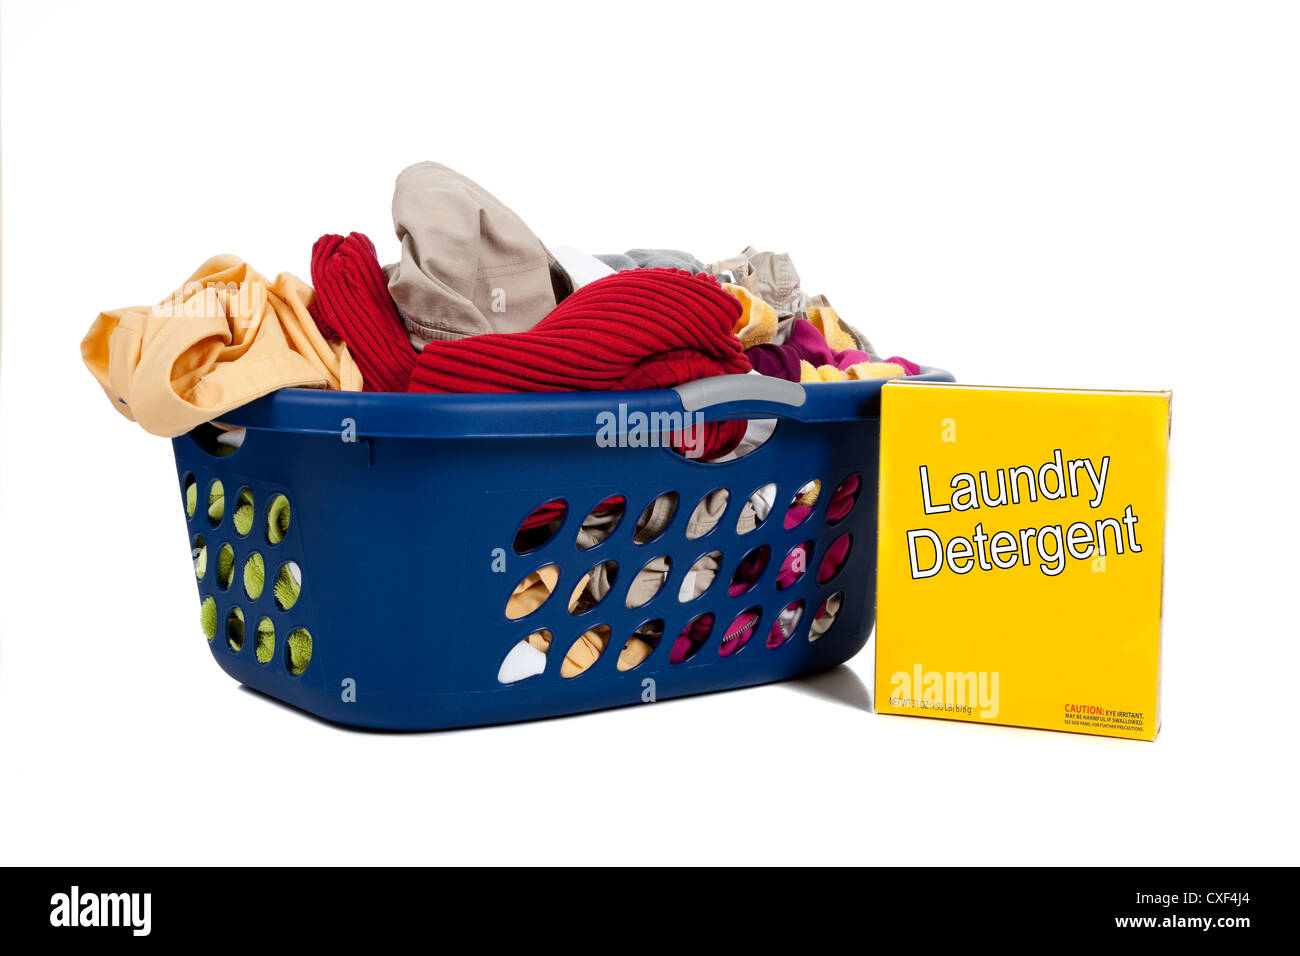 blue laundry basket with dirty clothes and a  box of yellow laundry detergent - Stock Image